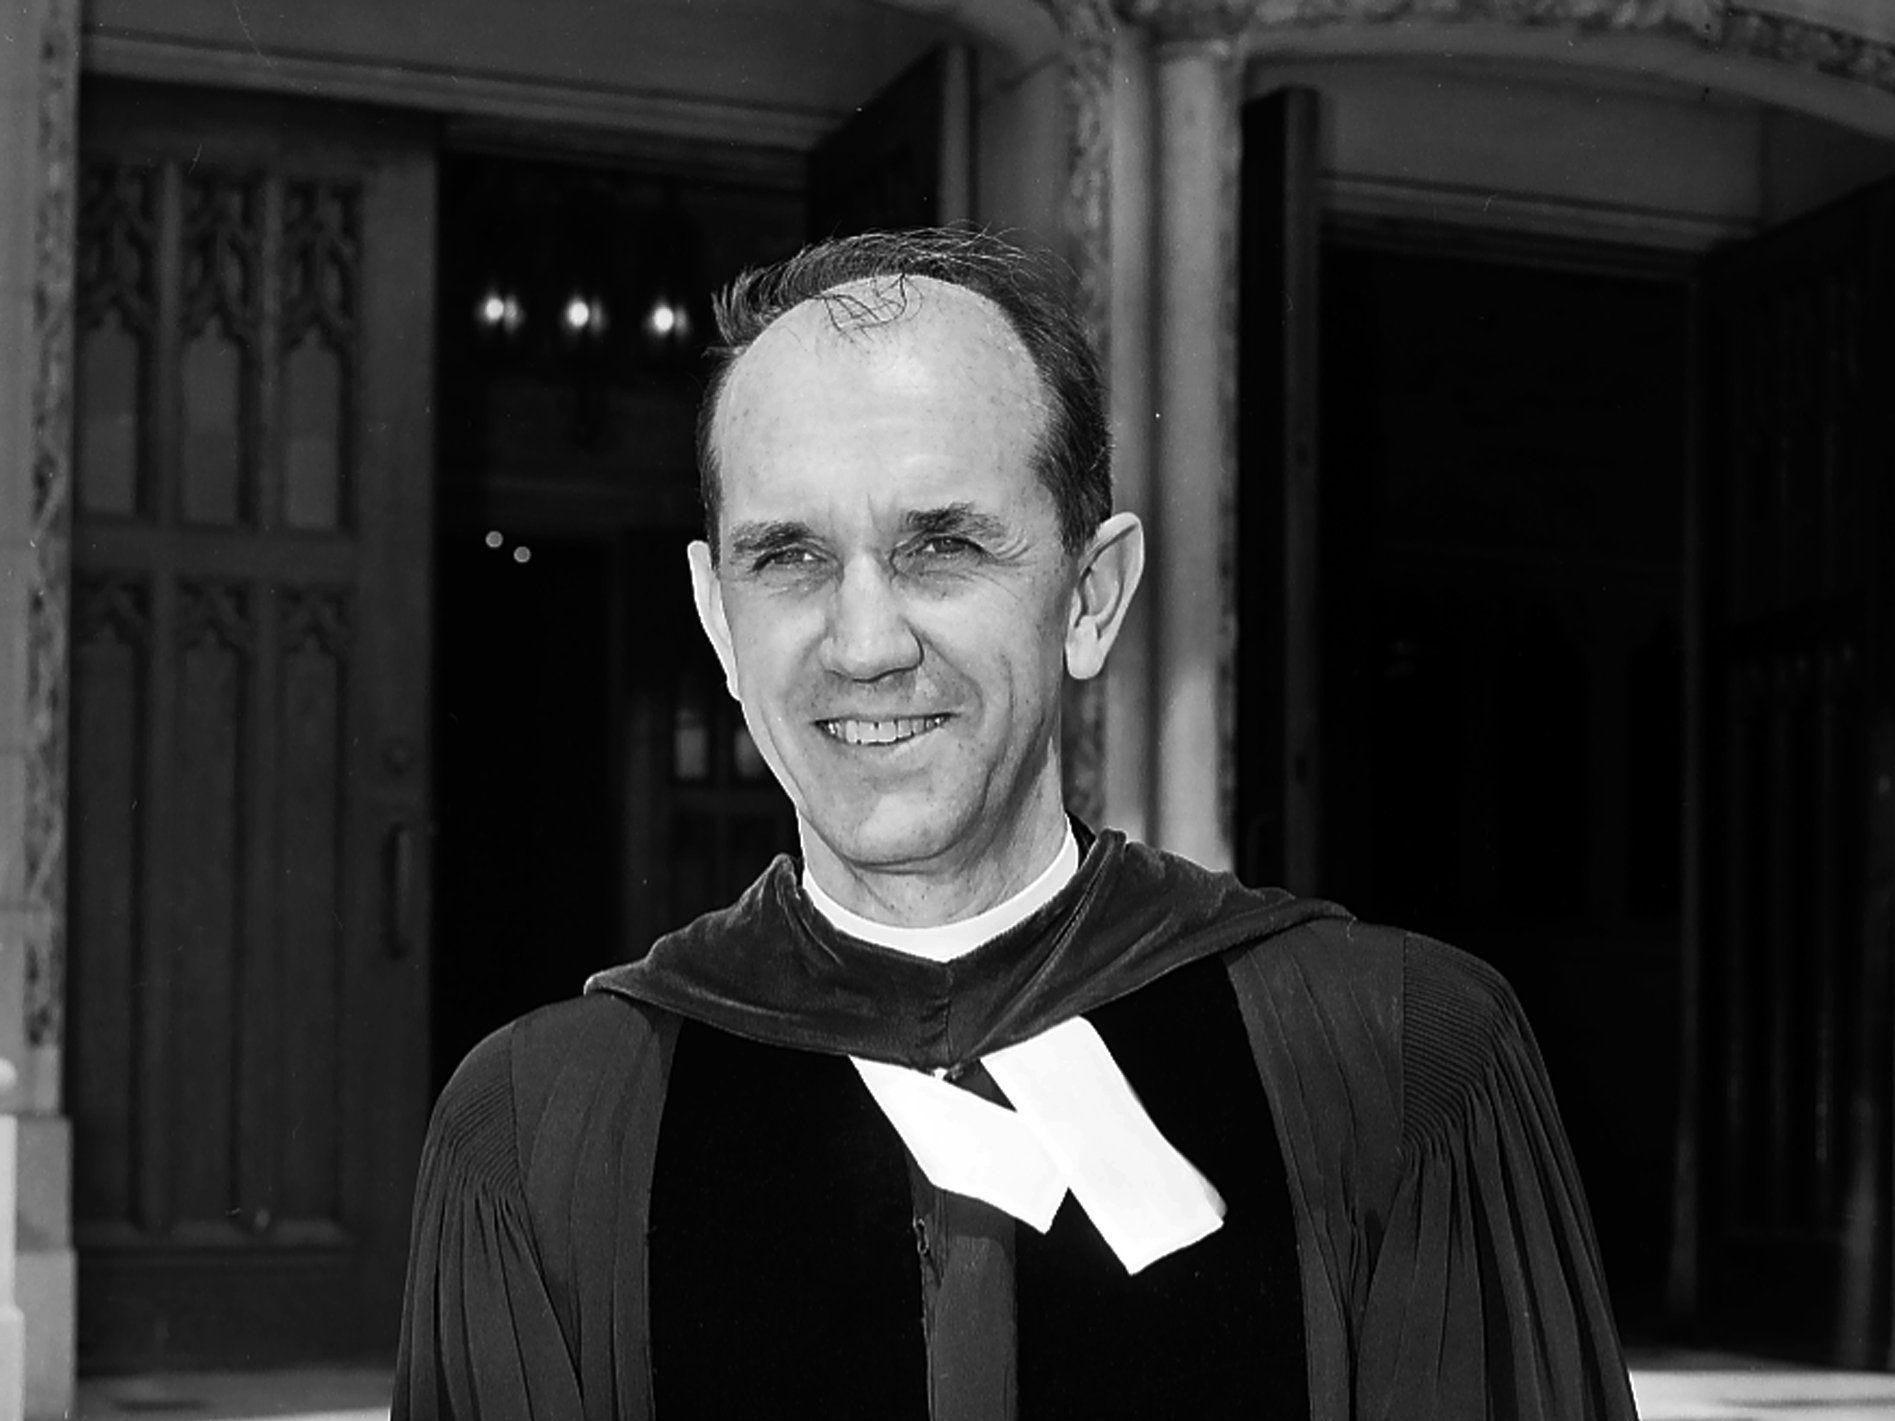 Dr. Paul Tudor Jones, pastor of Idlewild Presbyterian Church stands in front of the church, located at 1750 Union Avenue in April 1965. Born in Corinth, MS in 1909, he attended Southwestern at Memphis, graduating in 1932. He received theological degrees from Louisville Seminary and Union Seminary and began his ministry by serving small churches in Tchula and Lexington, MS. After serving churches in several states he moved to Idlewild in 1954, where he stayed until his retirement in 1975. Dr. Jones died on 27 Dec 1999.